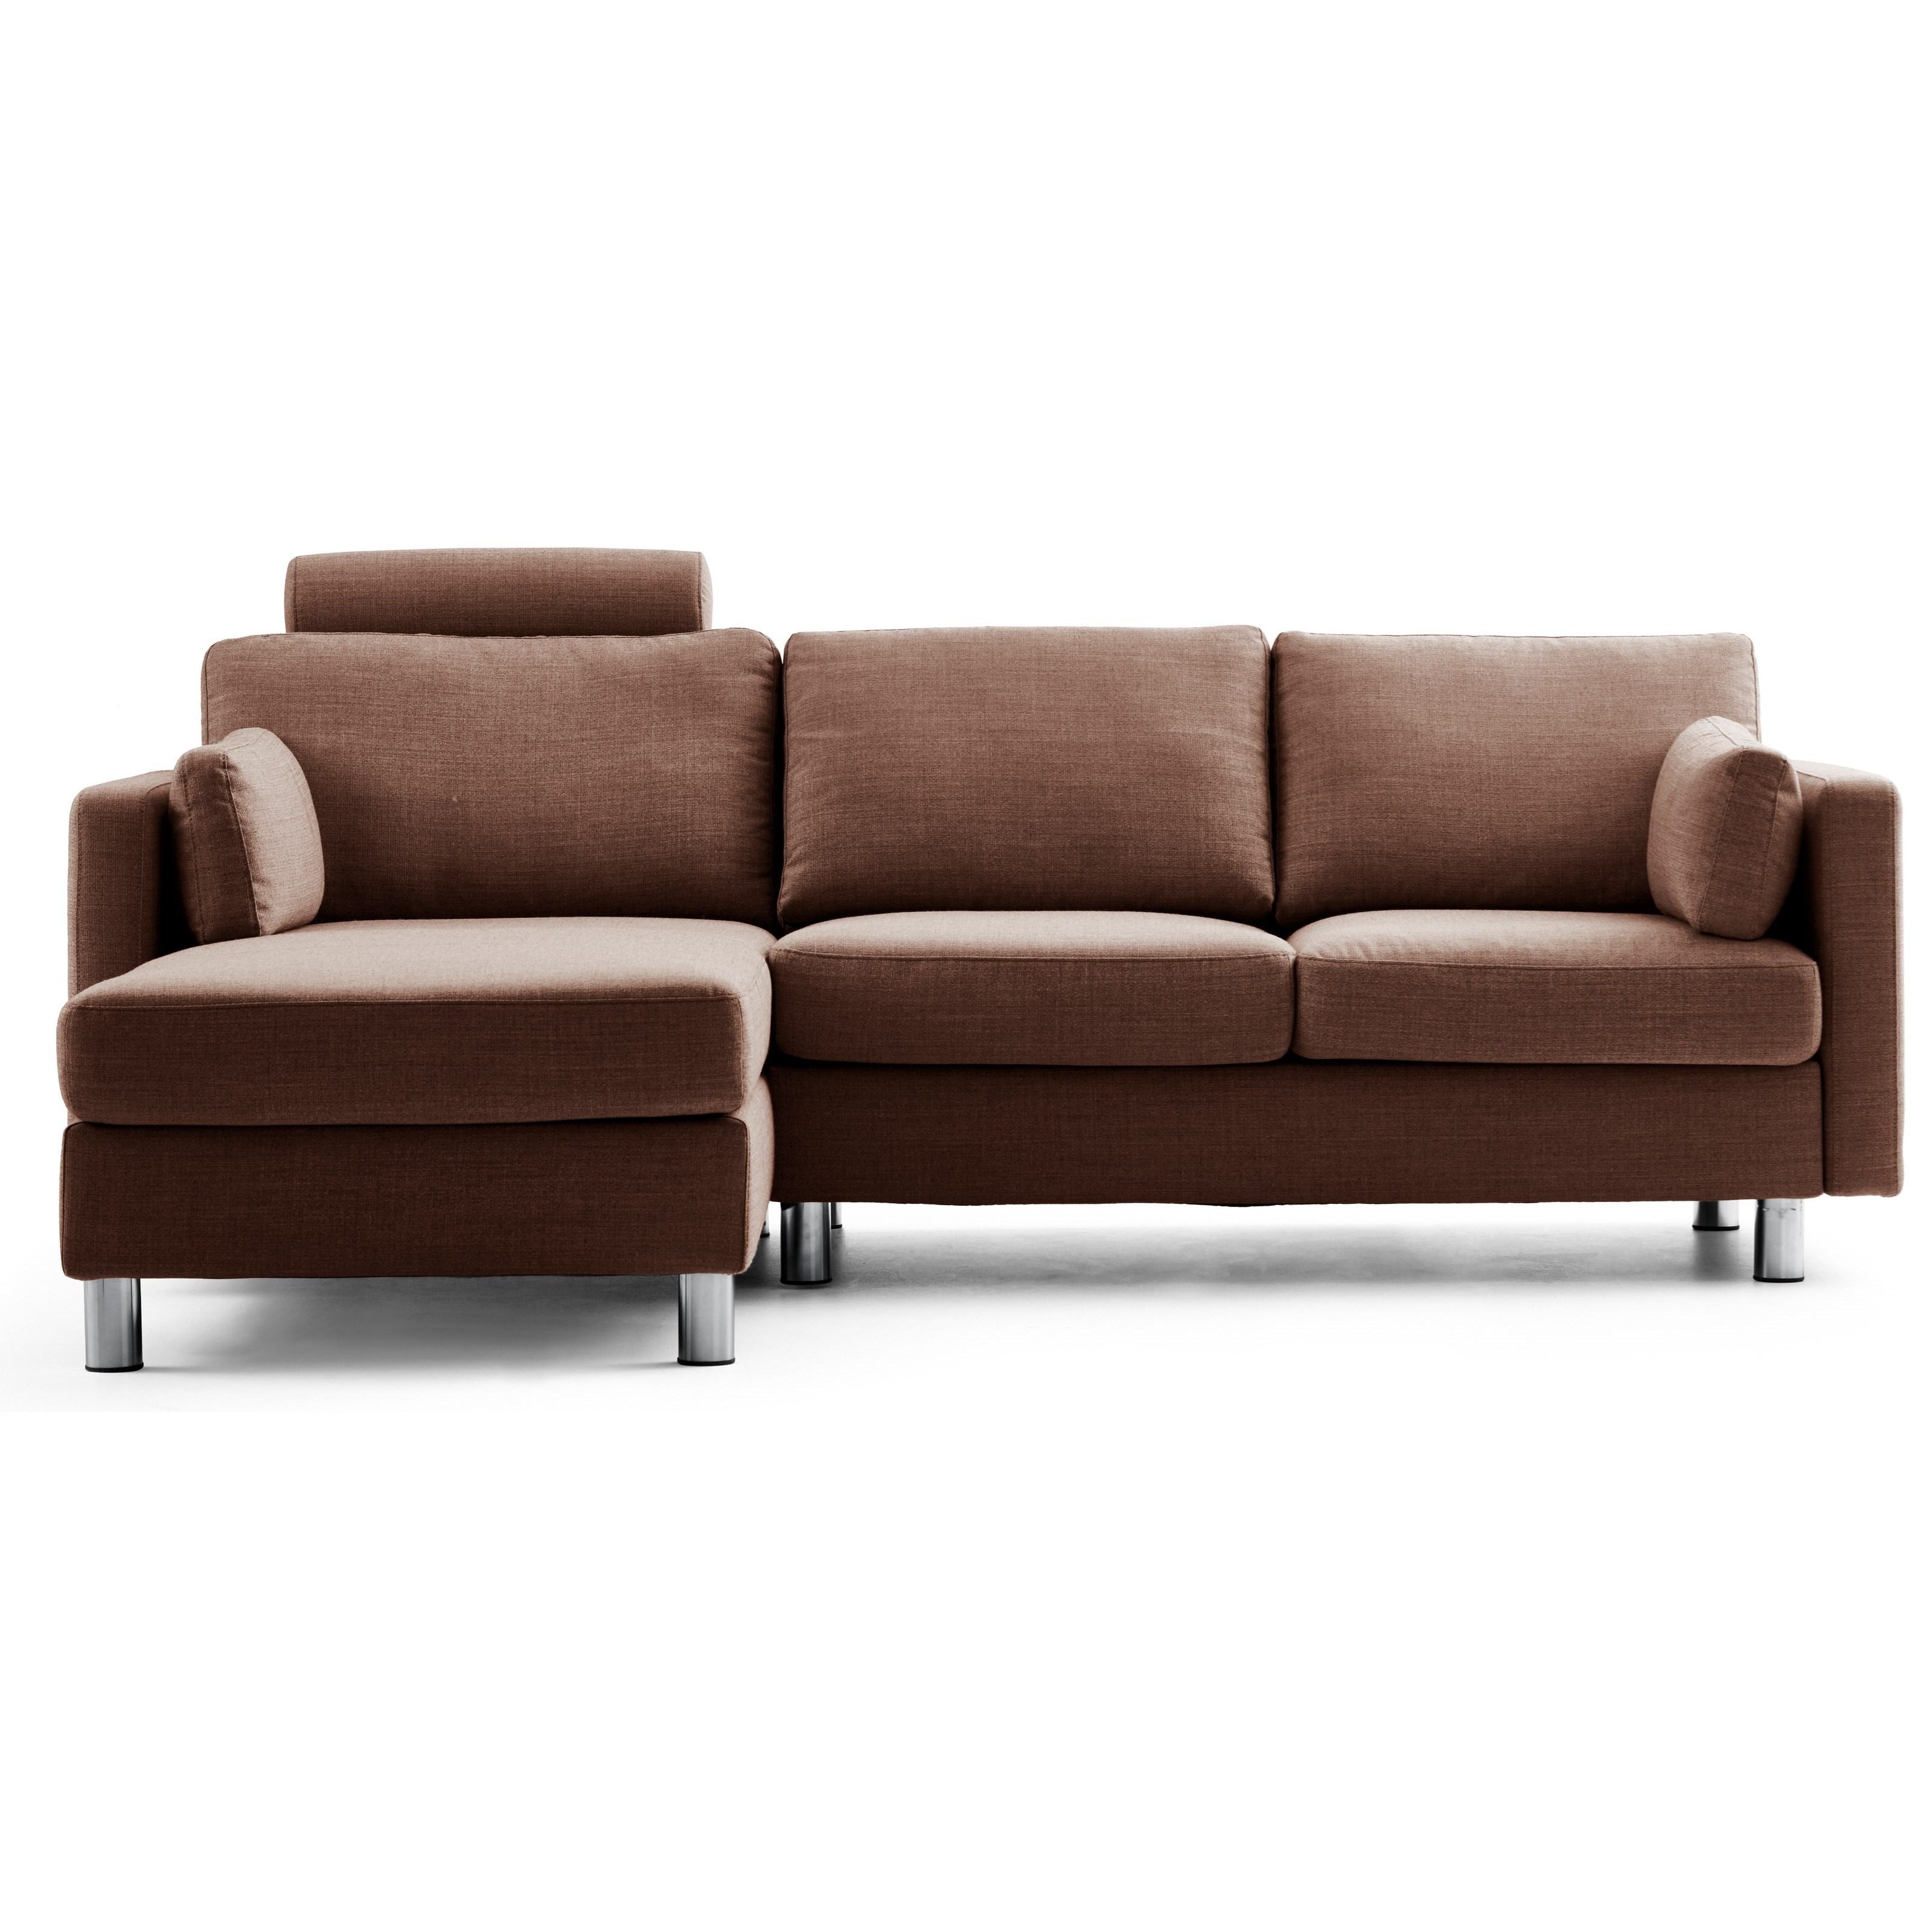 Stressless Emma E600 Contemporary Reclining 2-Seat With